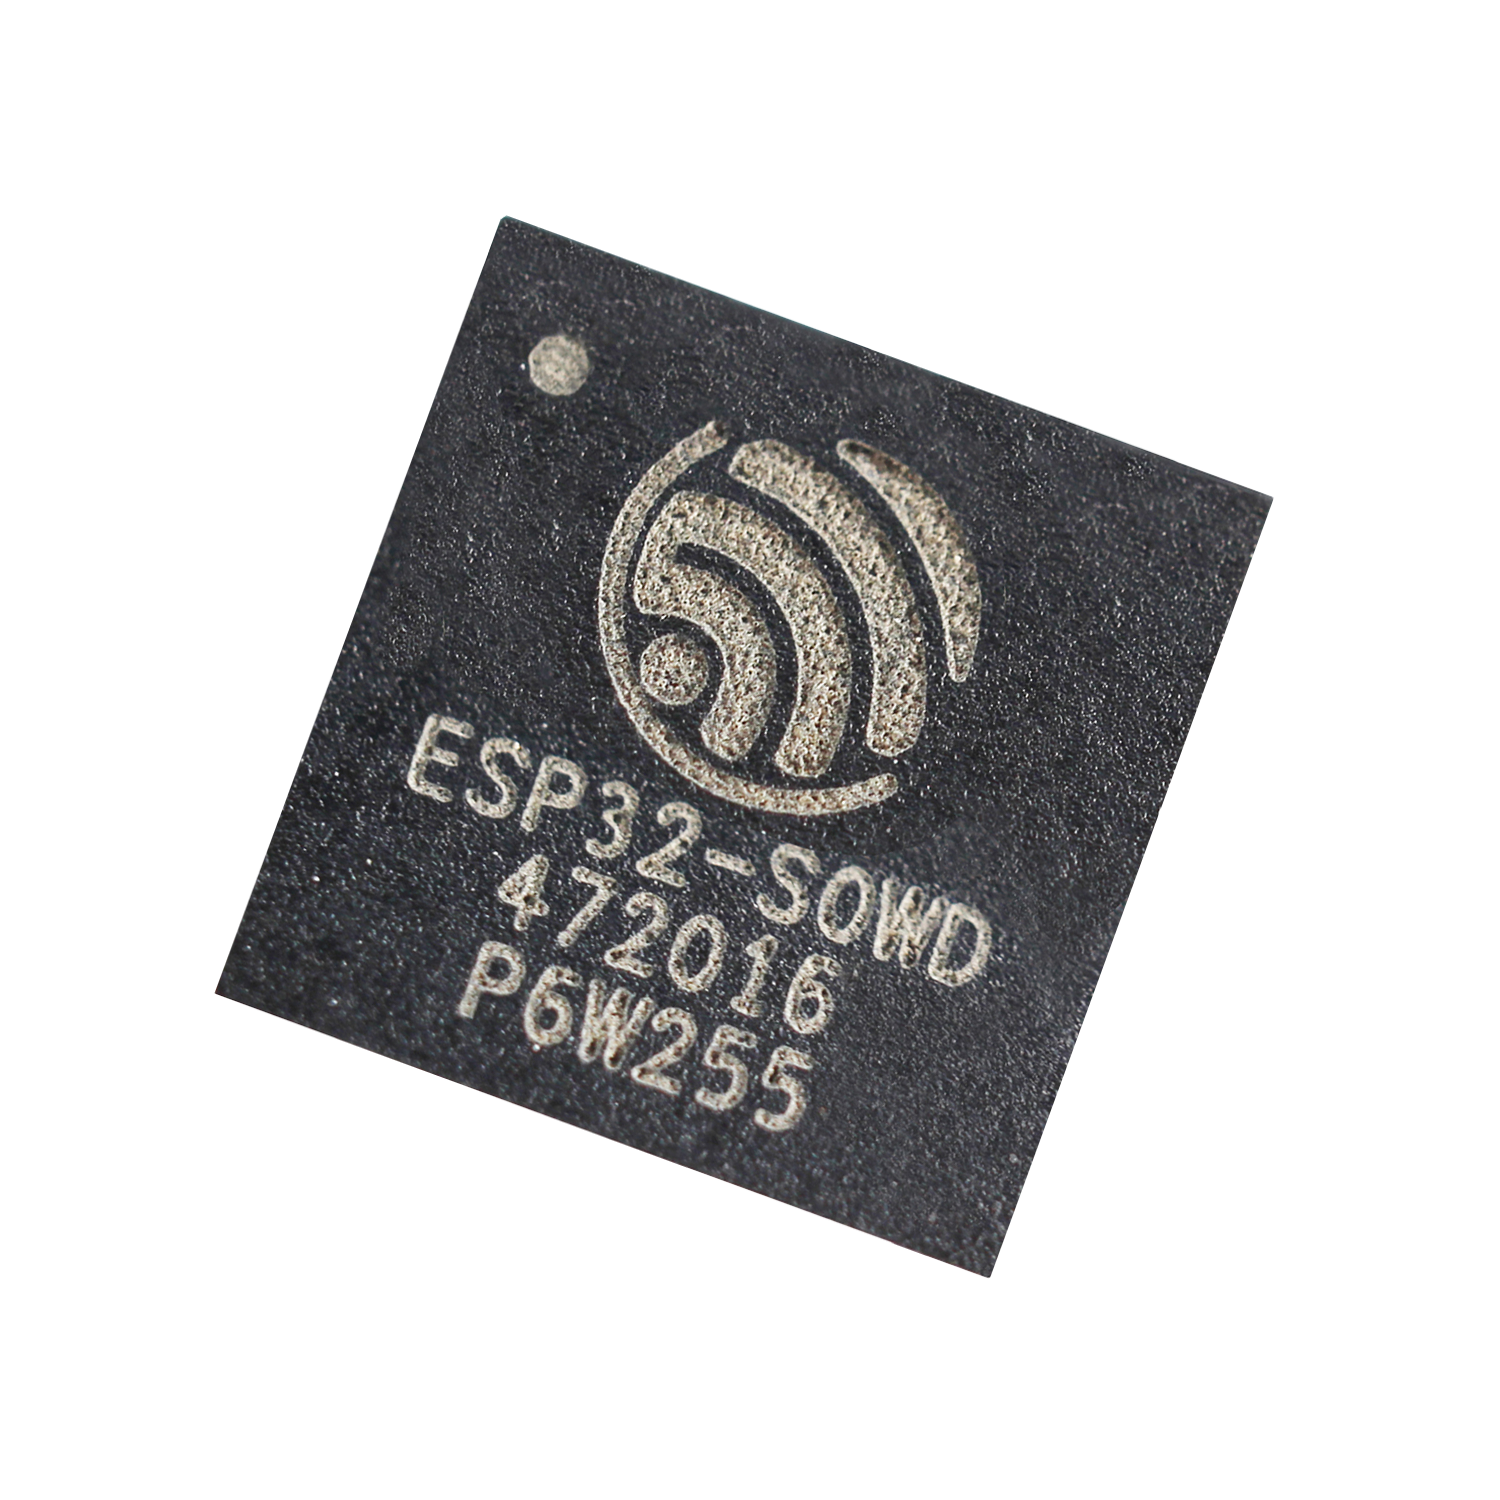 ESP32-S0WD - Single Core Wi-Fi & Bluetooth Combo Chip